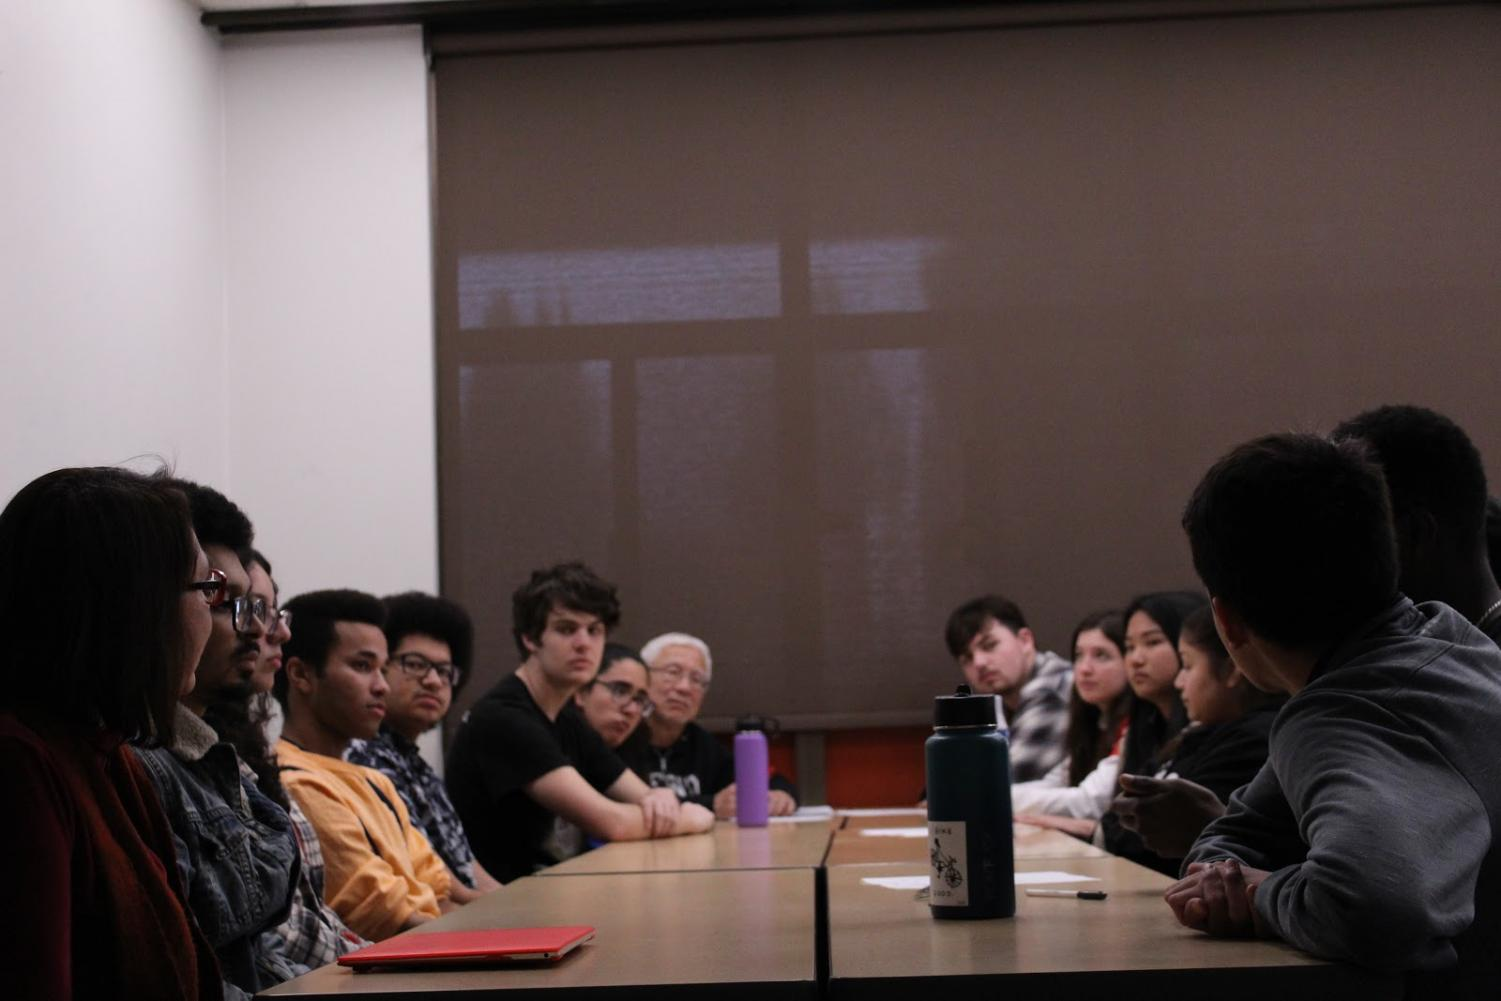 Phi Theta Kappa (PTK) Club held a meeting on Friday, Jan. 24, 2020 in SO-110 to get acquainted with new members and discuss future plans.